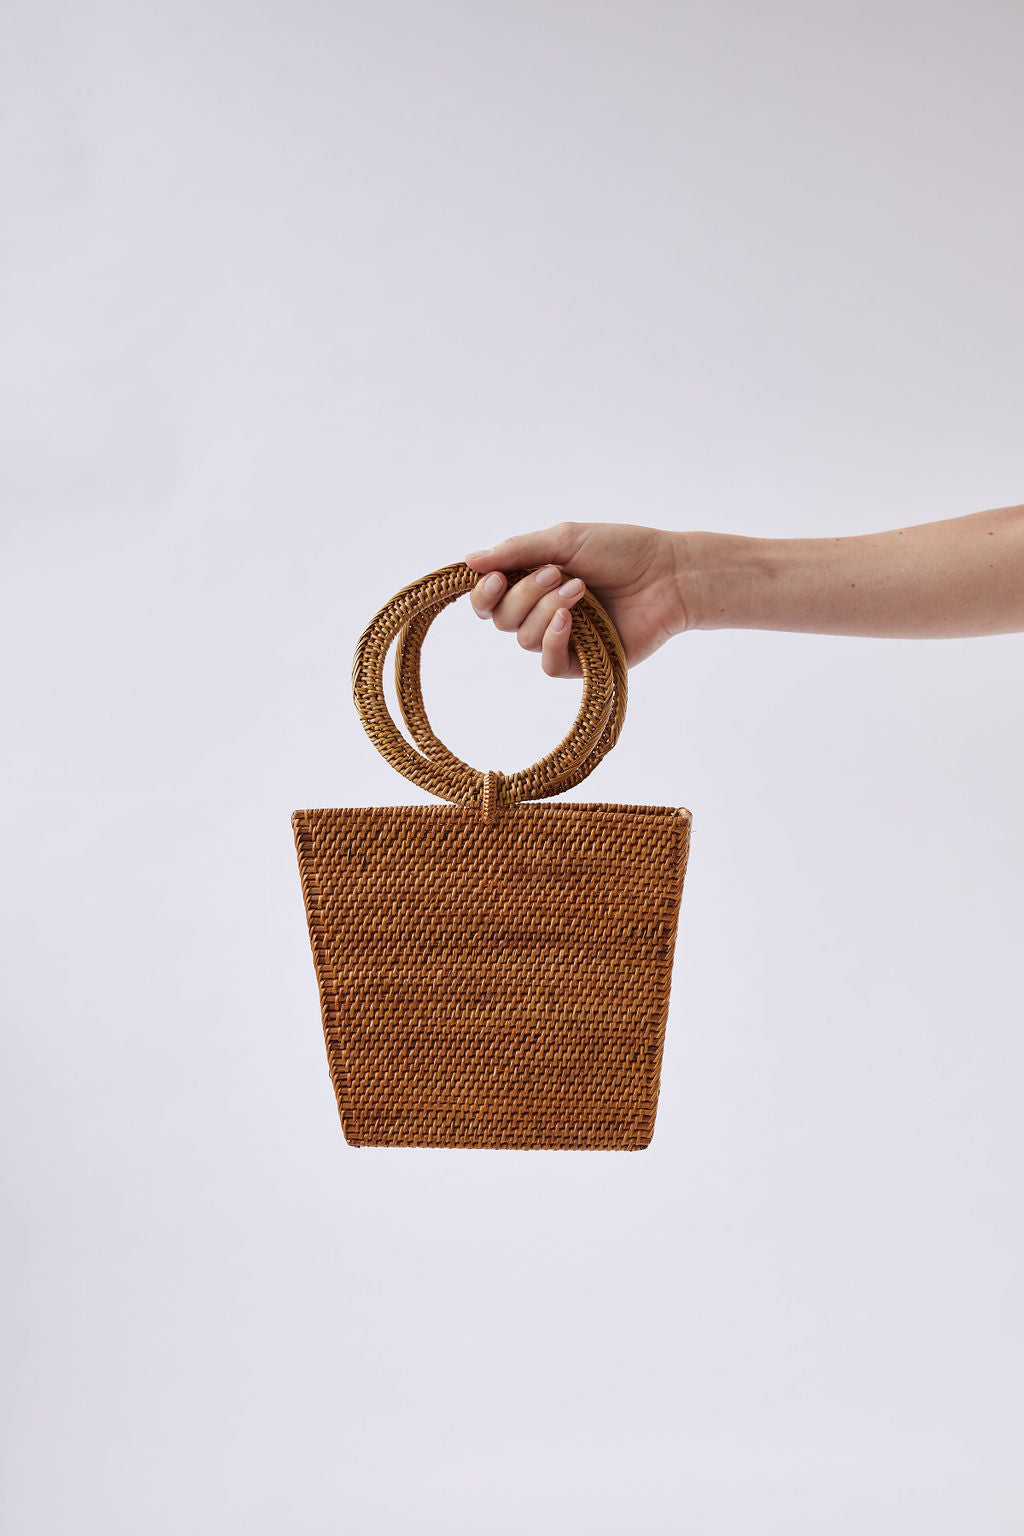 The Gaia Bag